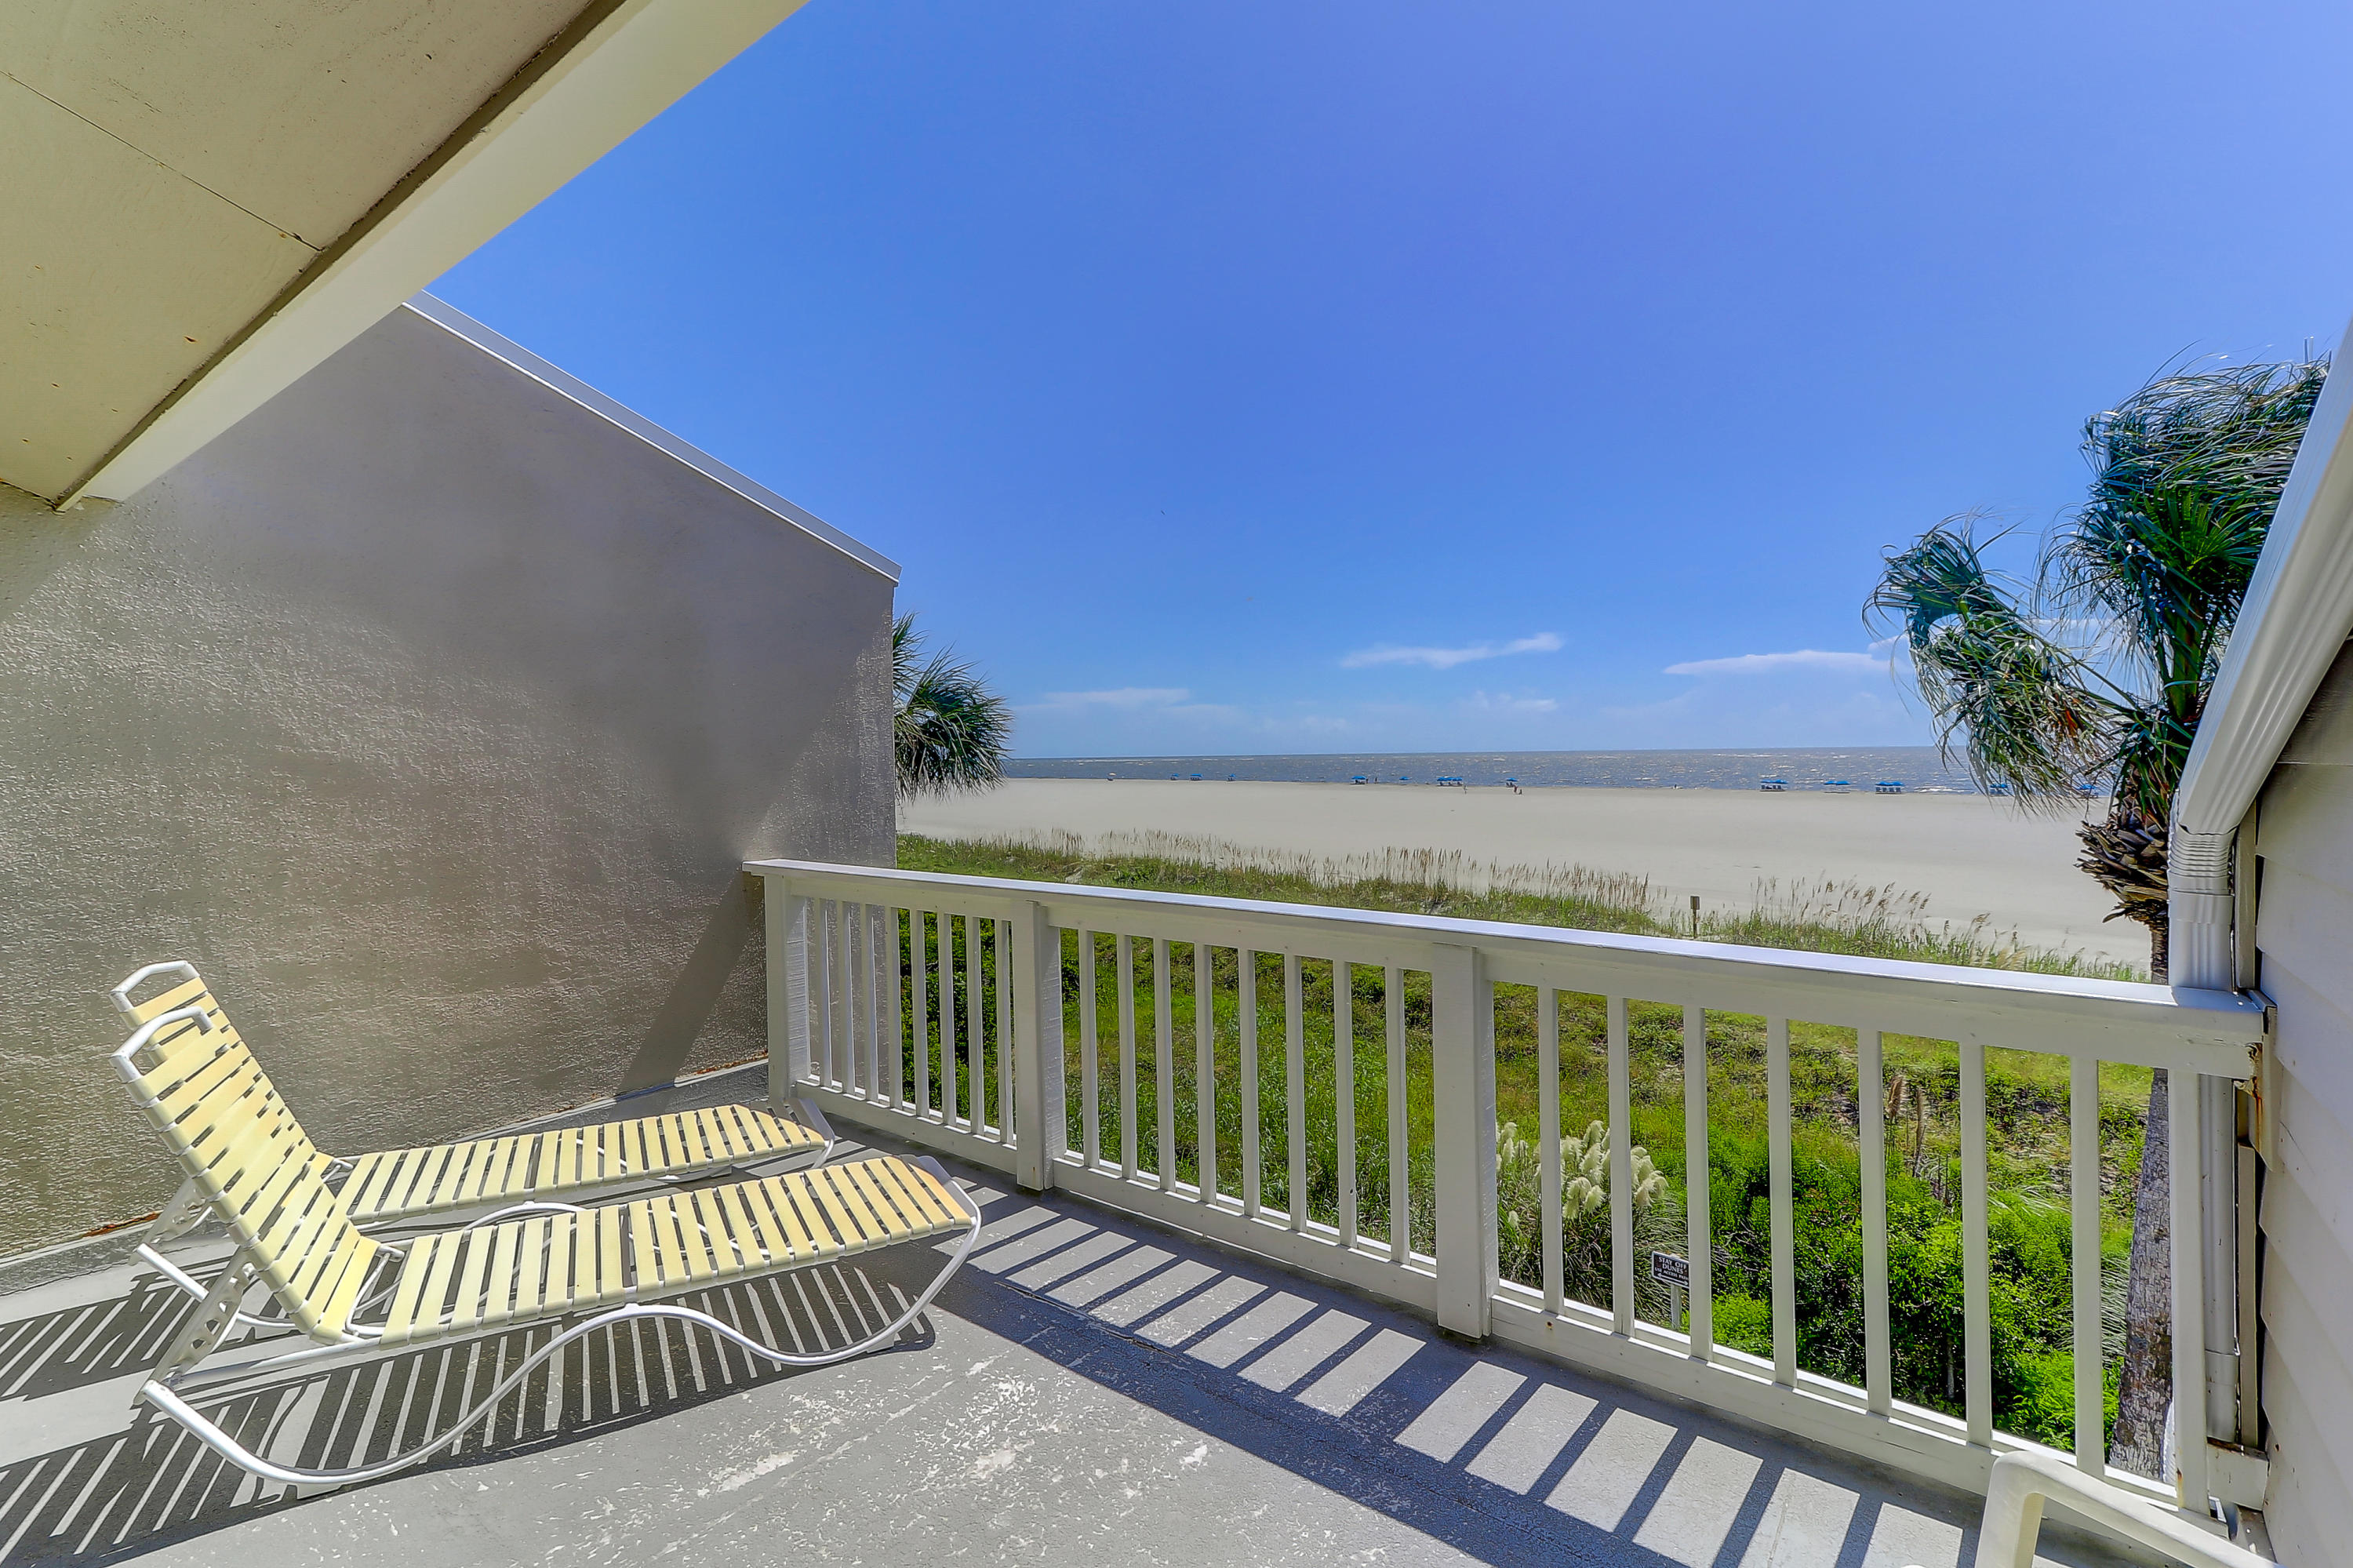 Beach Club Villas Homes For Sale - 33 Beach Club Villas, Isle of Palms, SC - 10